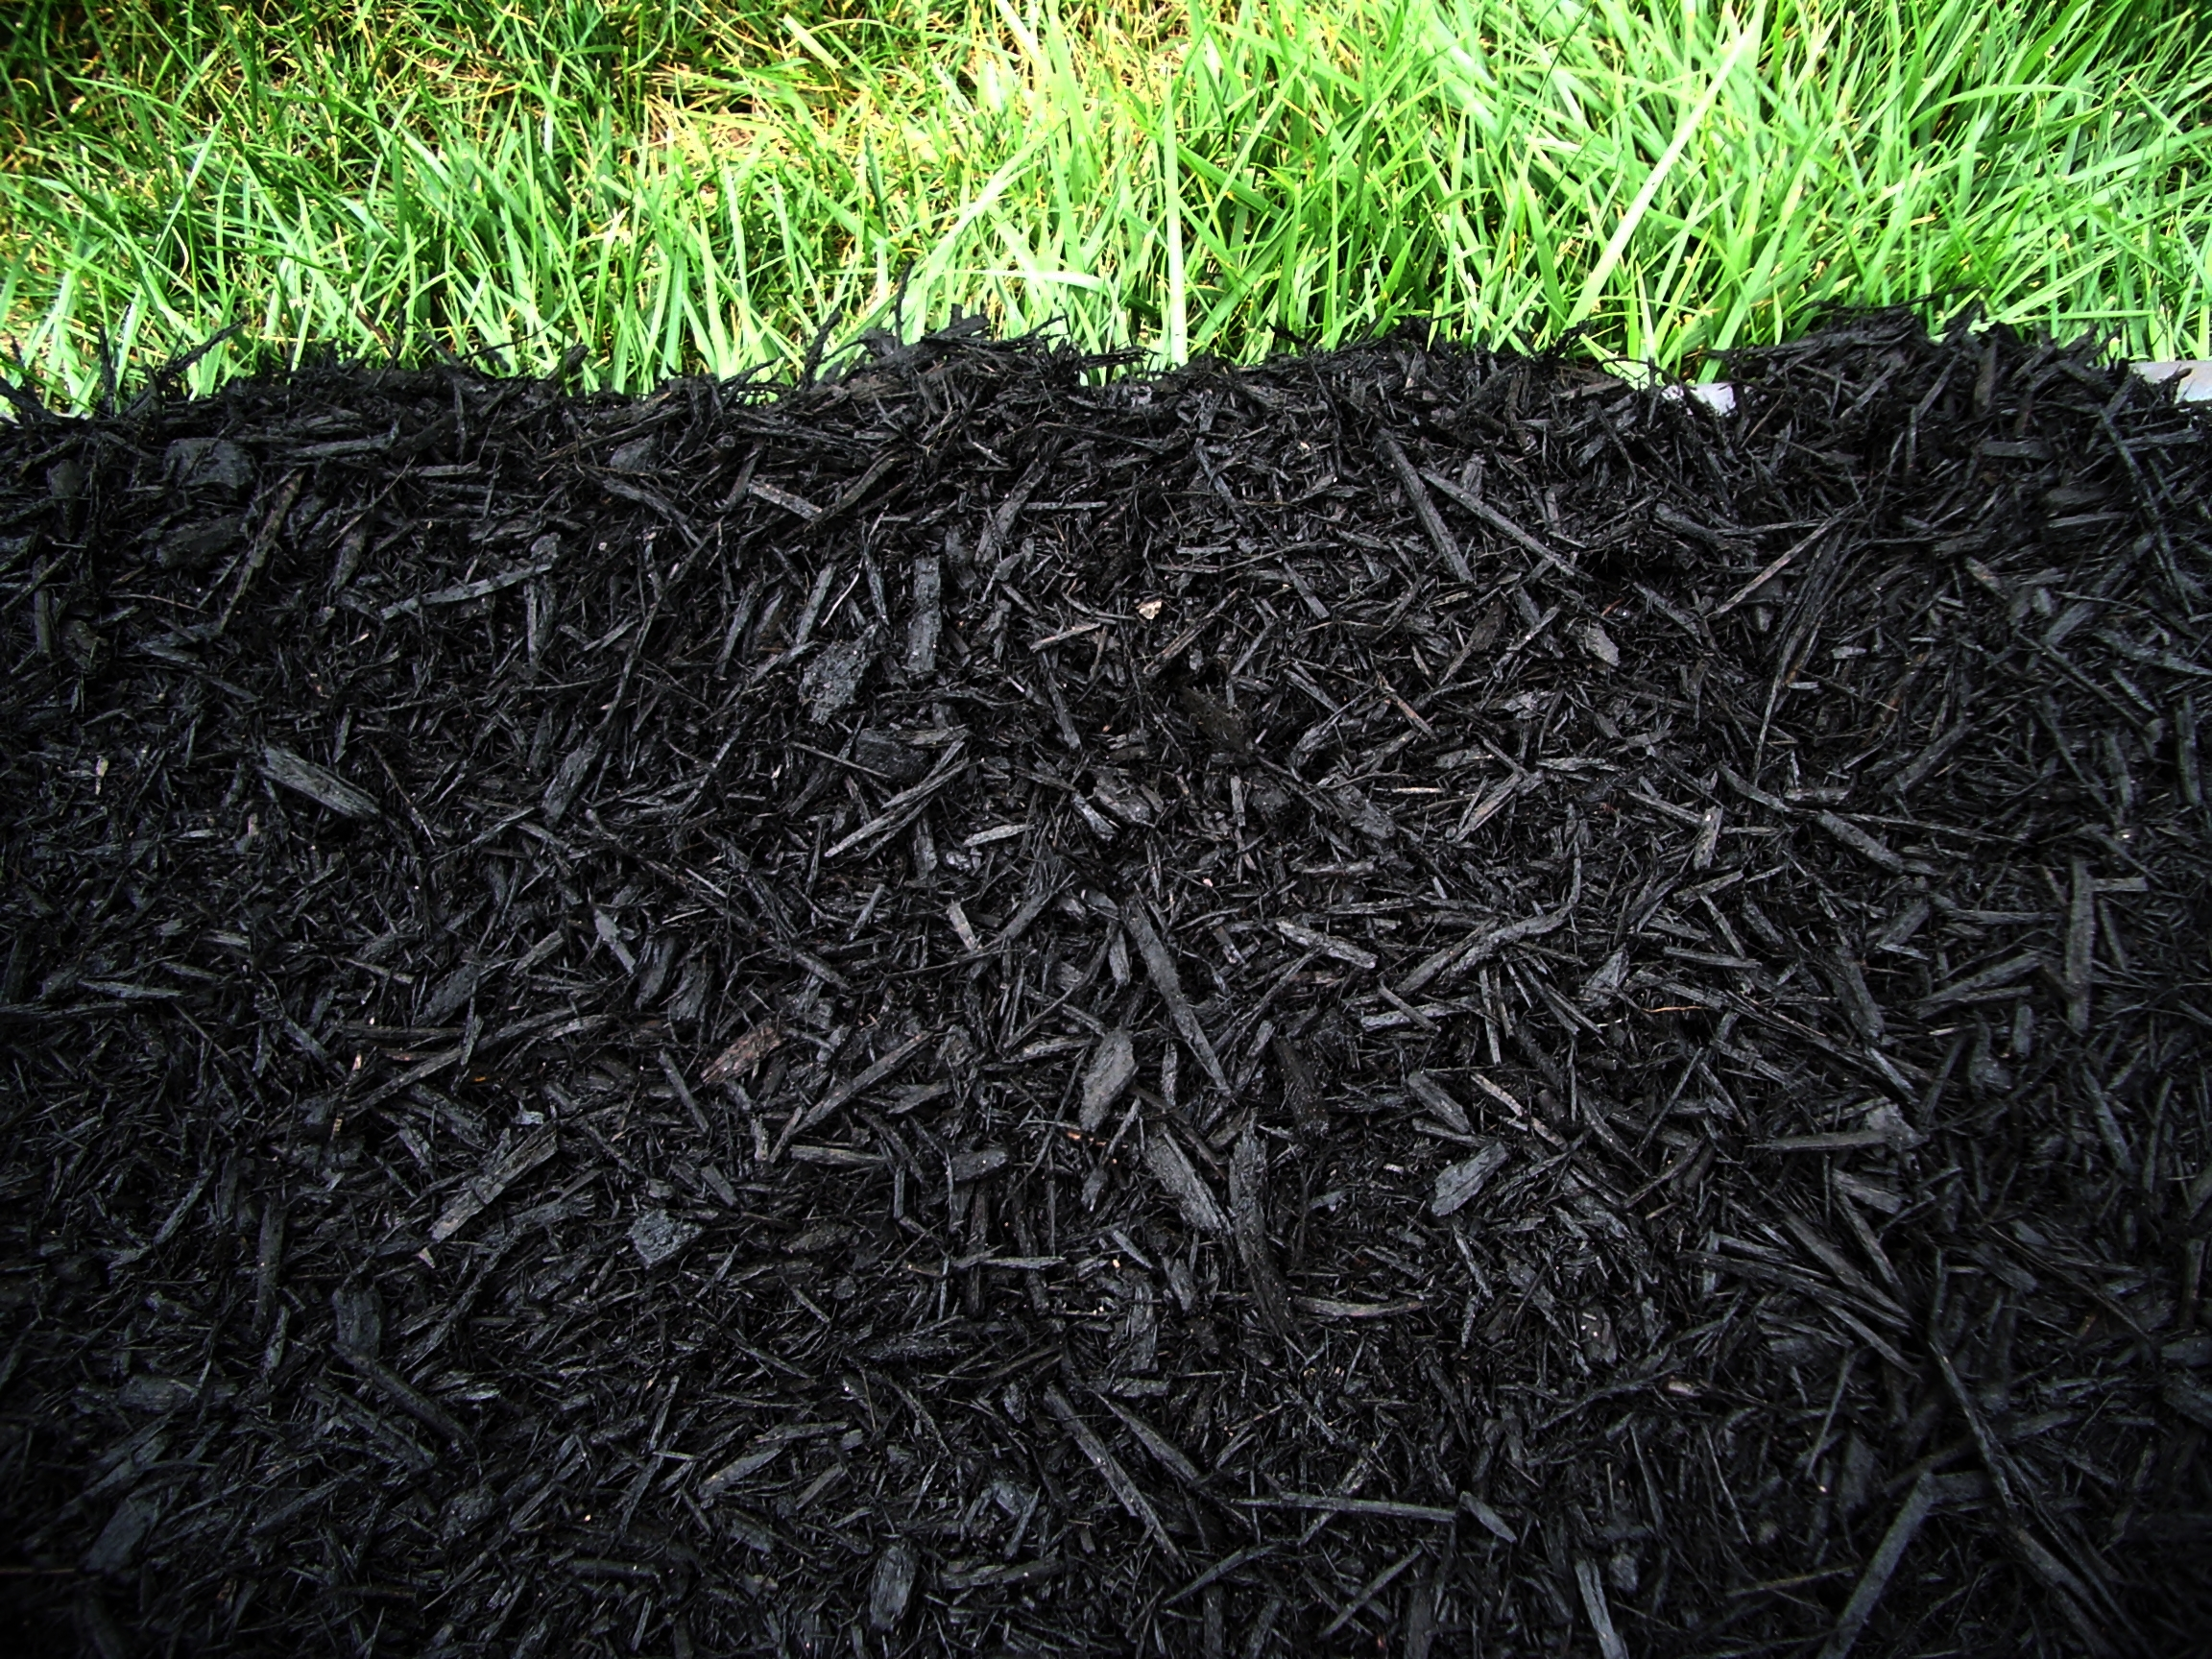 Pictures of mulch beds TFG (The Foschini Group) iFashion